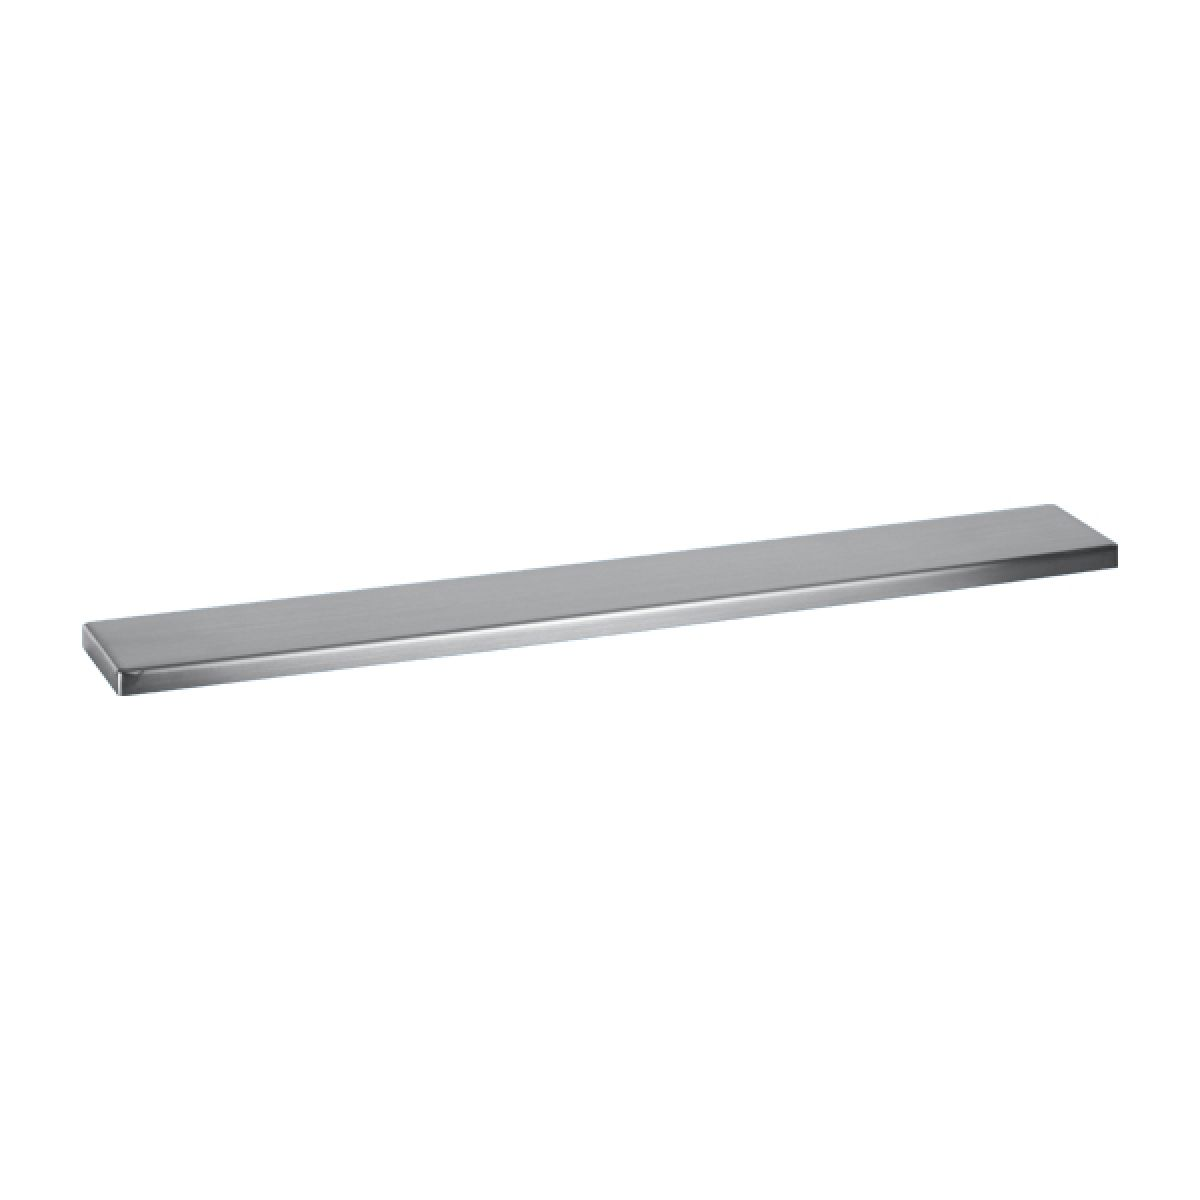 McAlpine COV800-P 800mm Channel Drain Polished Cover Plate